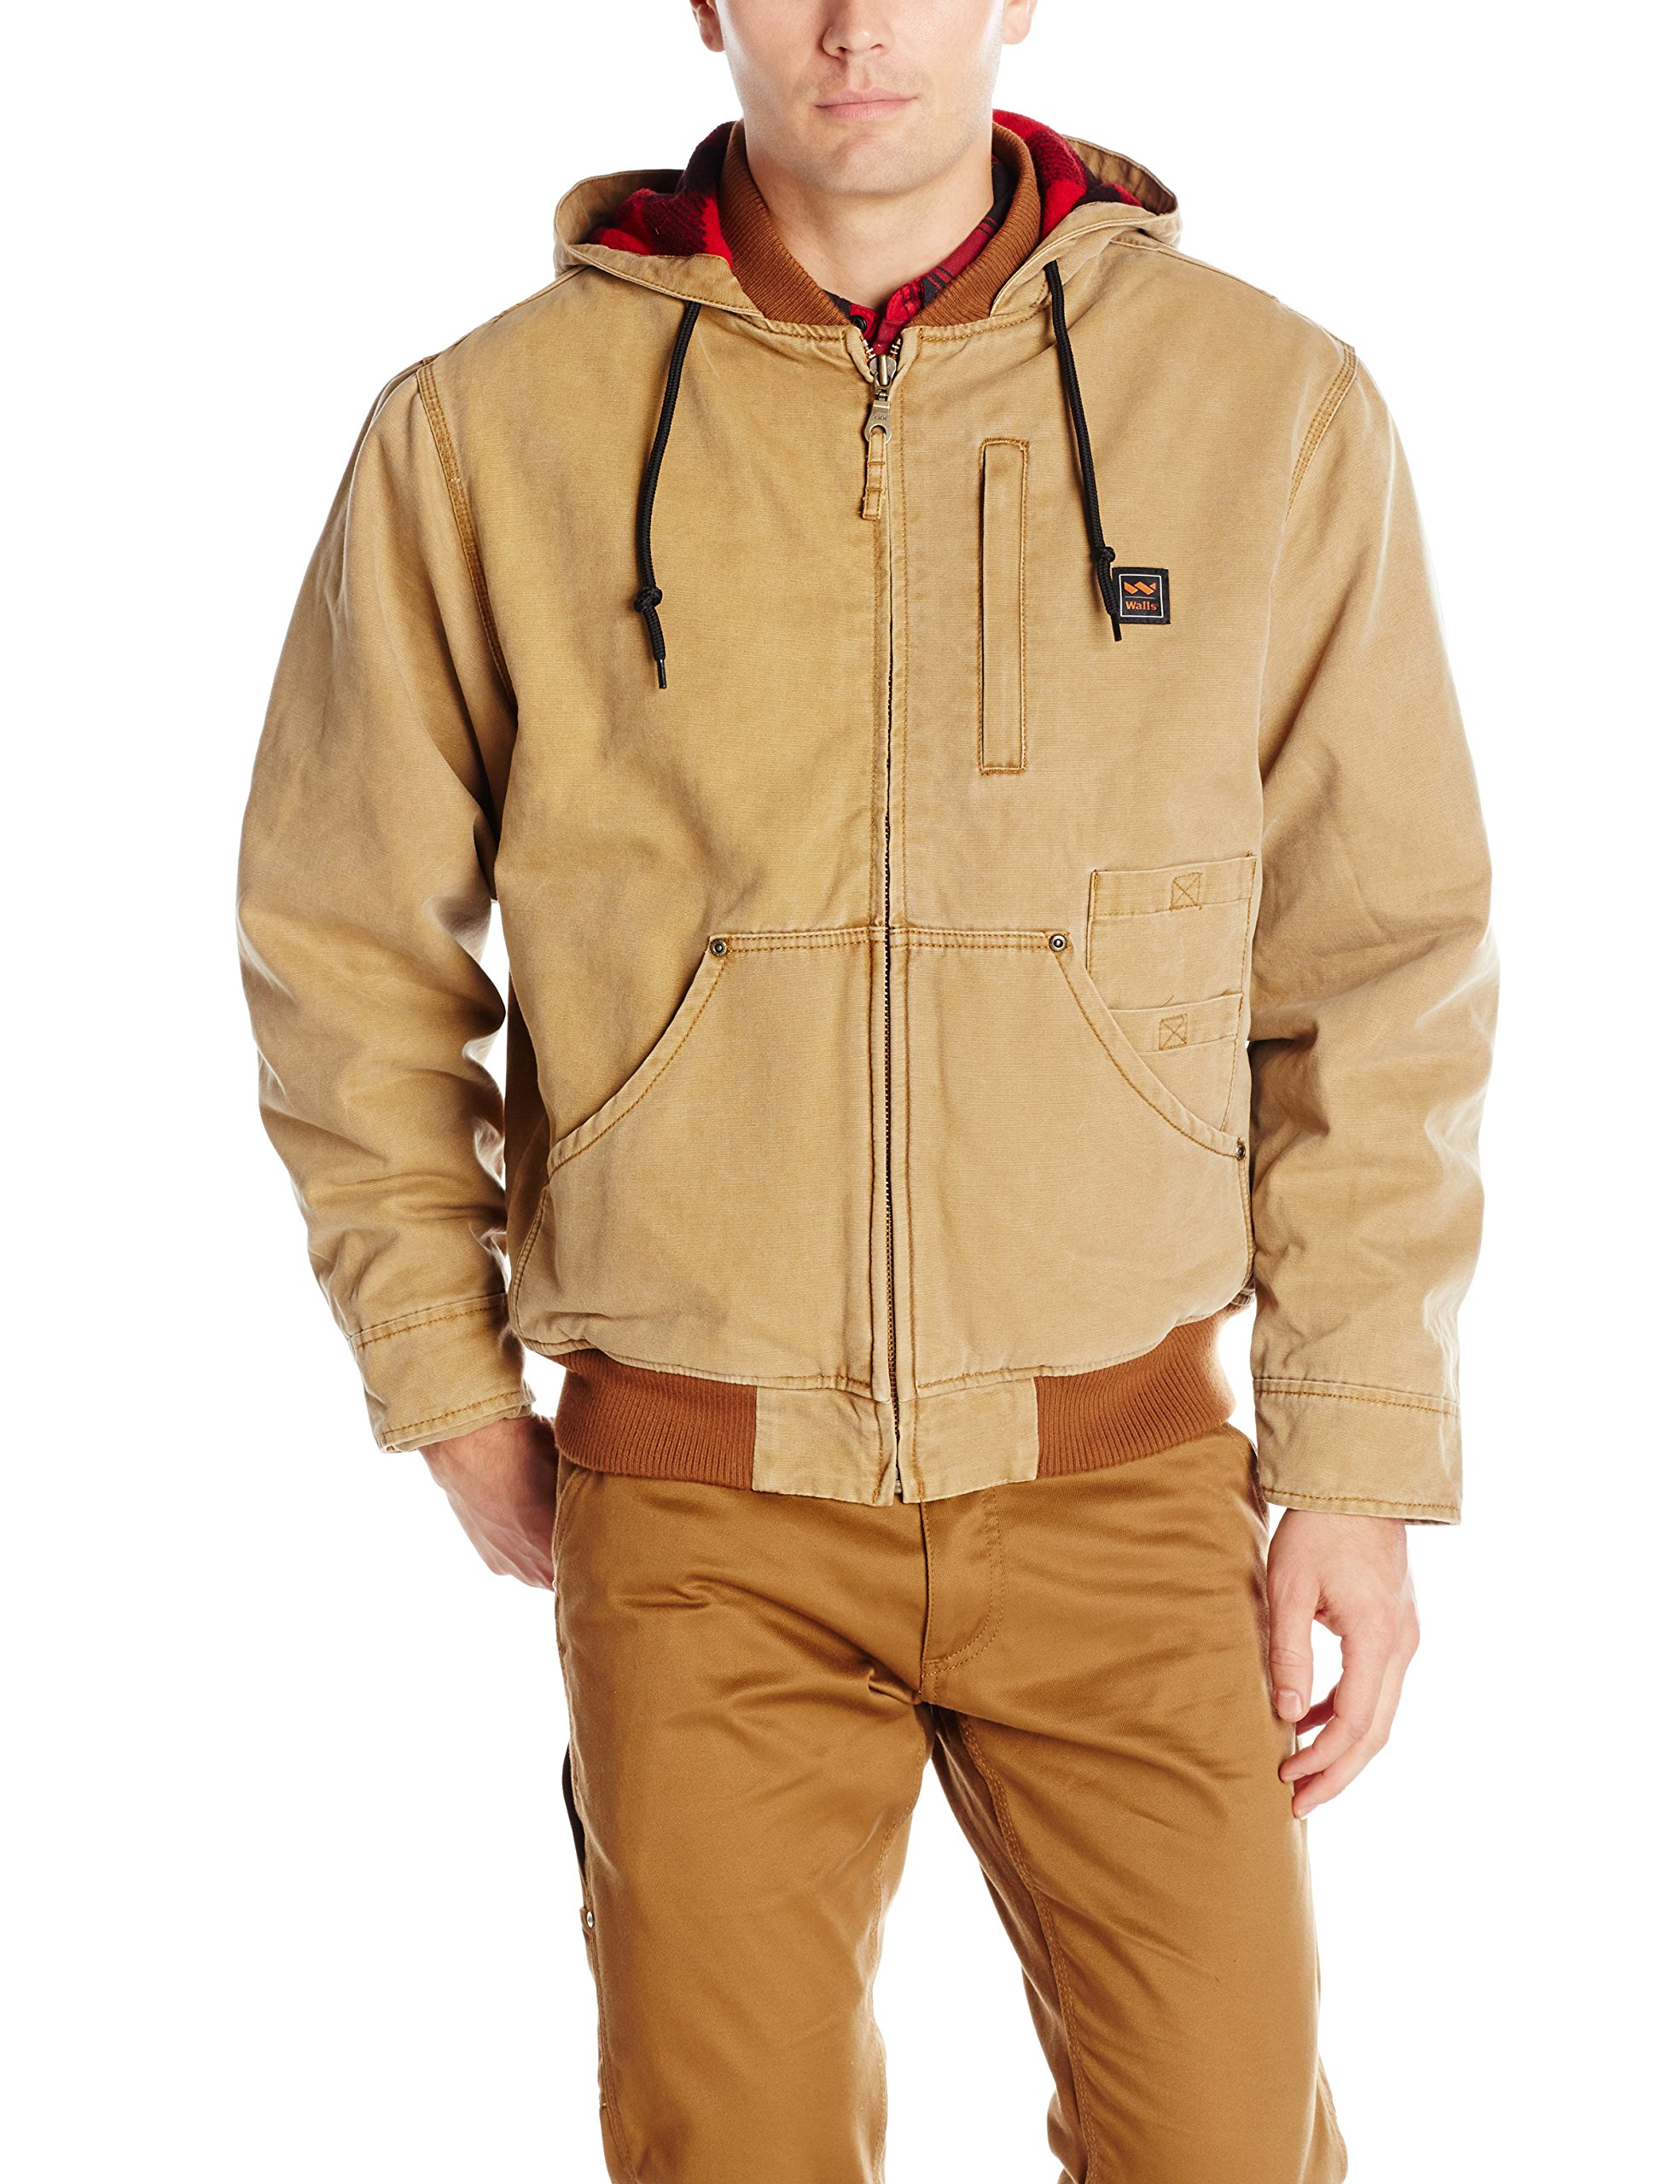 Walls Men's Breckenridge Vintage Duck Hooded Jacket, Pecan, Medium